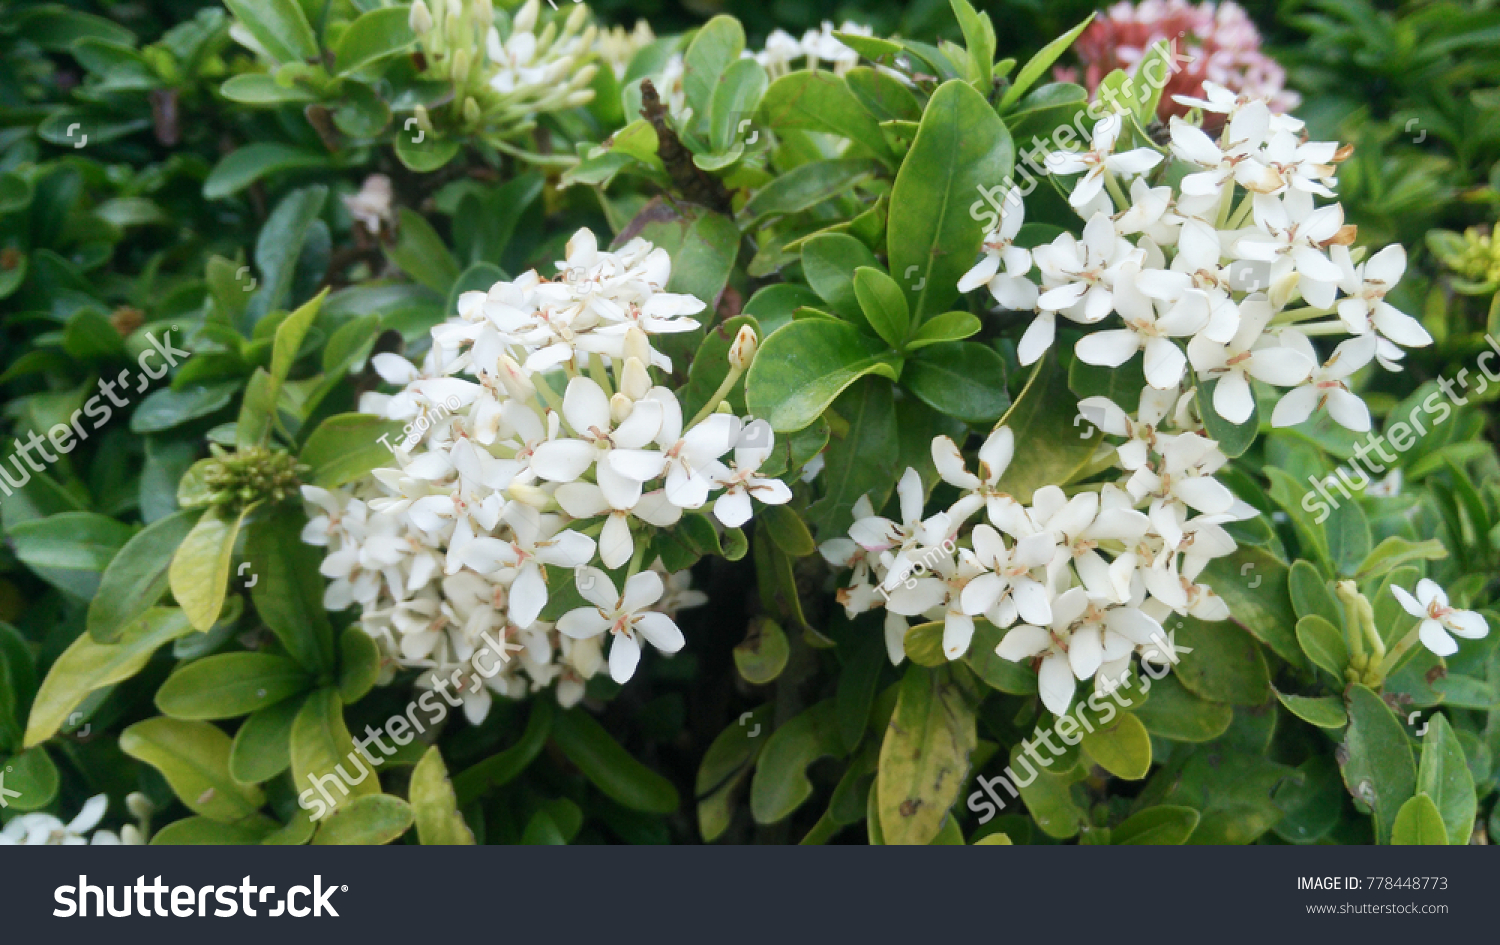 White west indian jasmine flowers blooming stock photo edit now white west indian jasmine flowers blooming in the garden izmirmasajfo